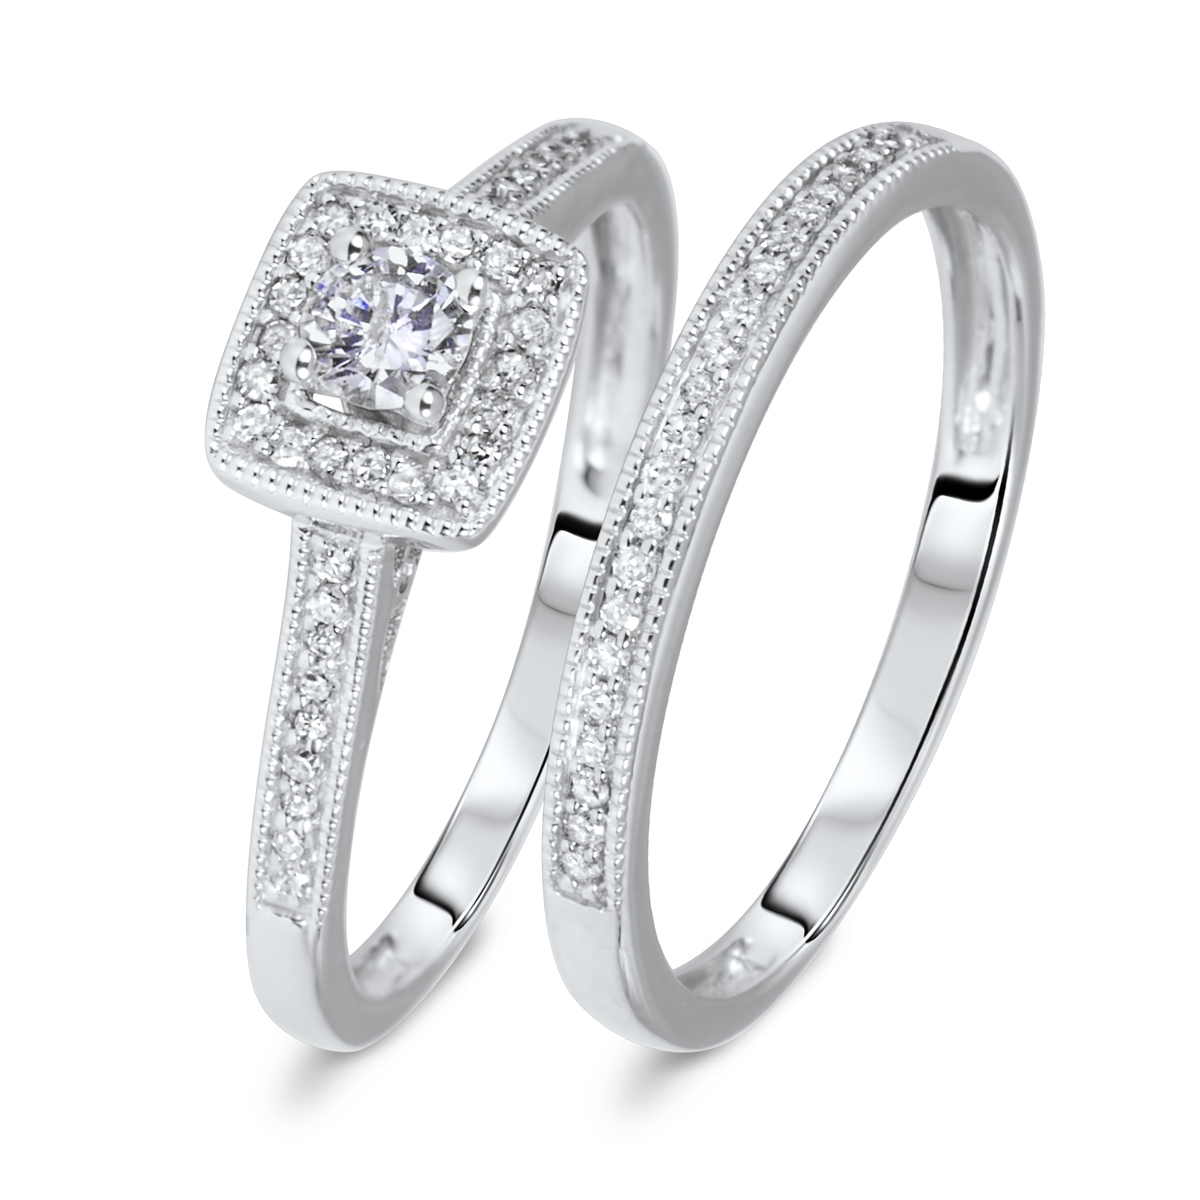 13 CT TW Round Cut Diamond Ladies Bridal Wedding Ring Set 10K